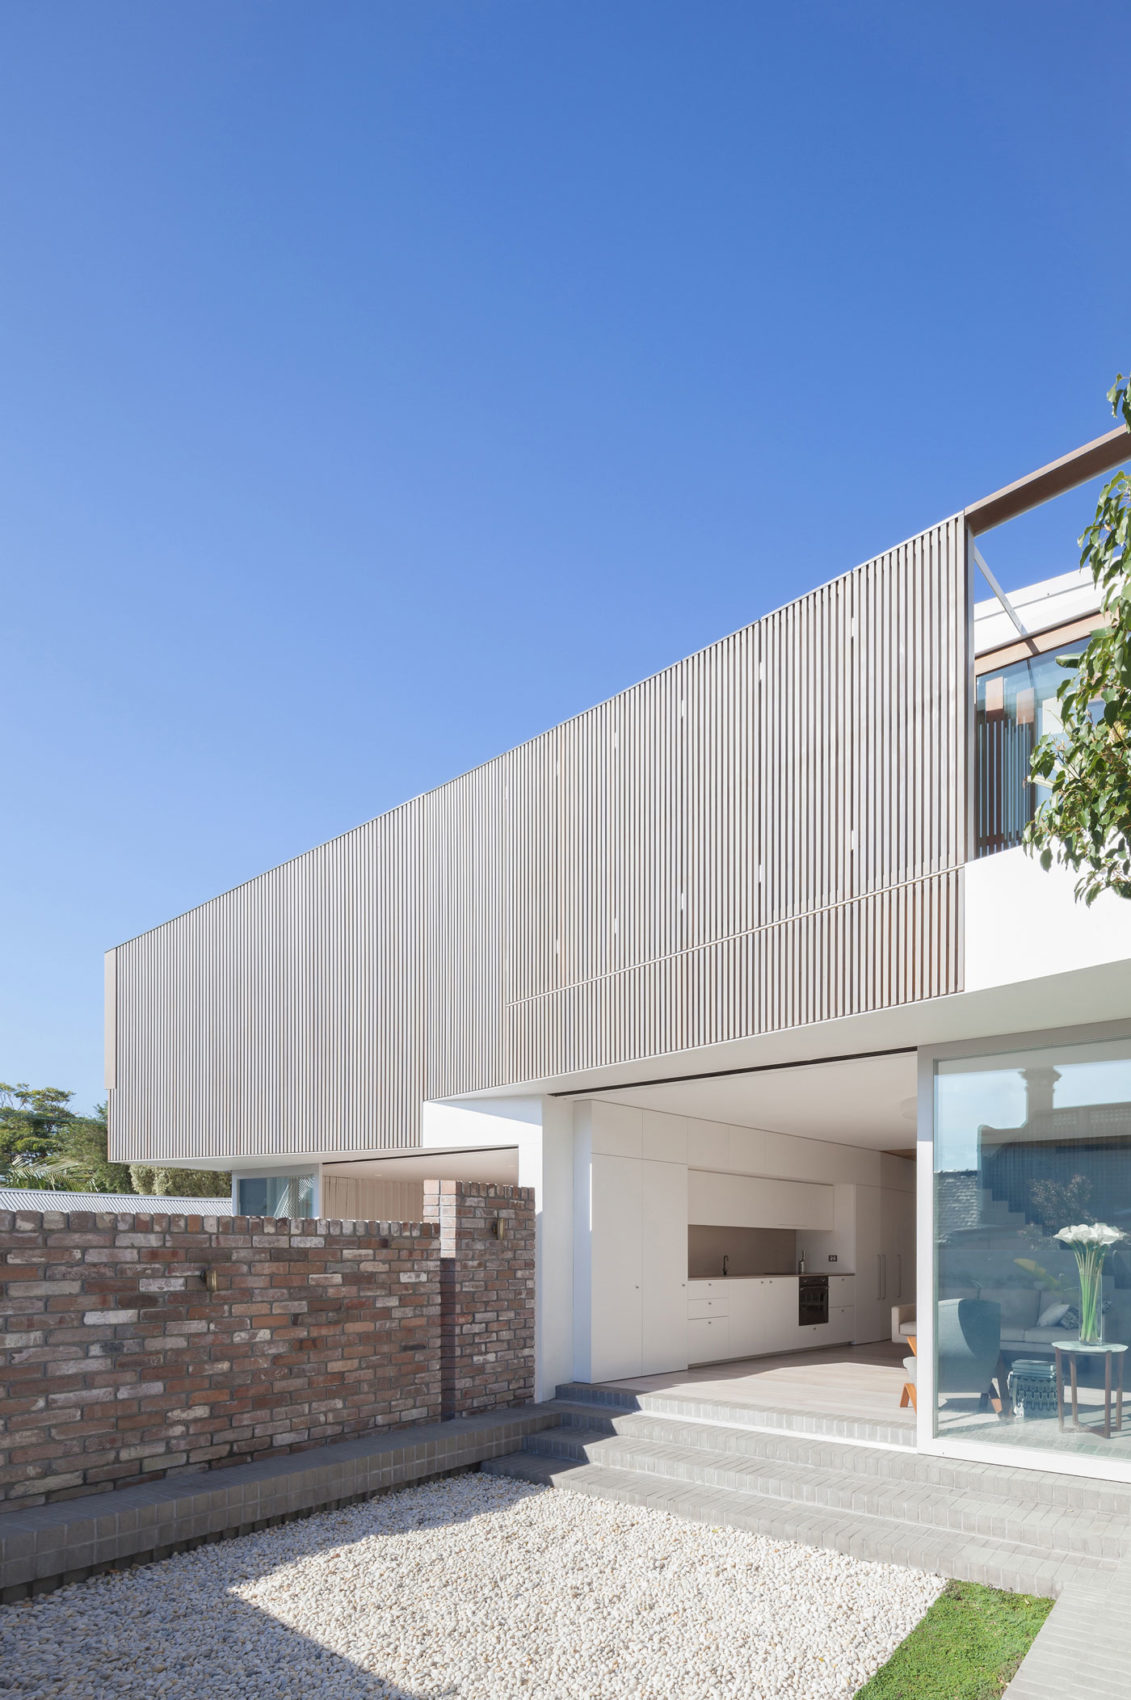 Balmain Houses by Benn & Penna Architects (3)